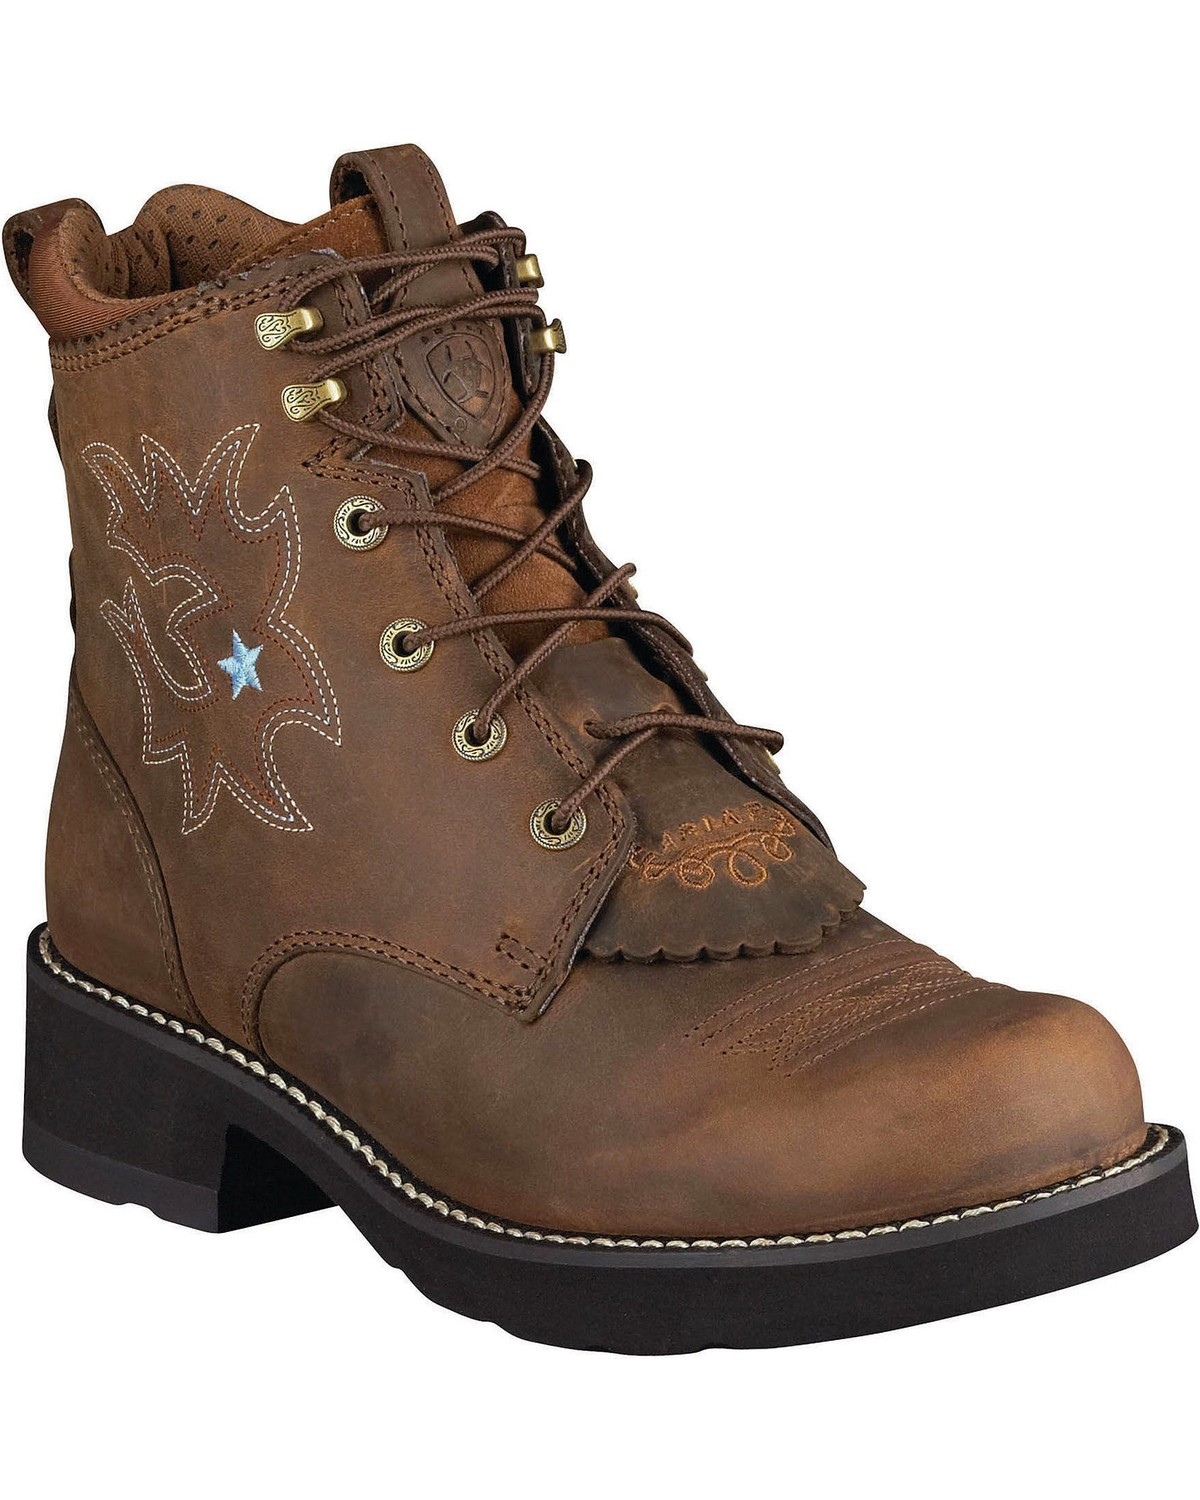 Discounts average $15 off with a Boot Barn promo code or coupon. 50 Boot Barn coupons now on RetailMeNot.